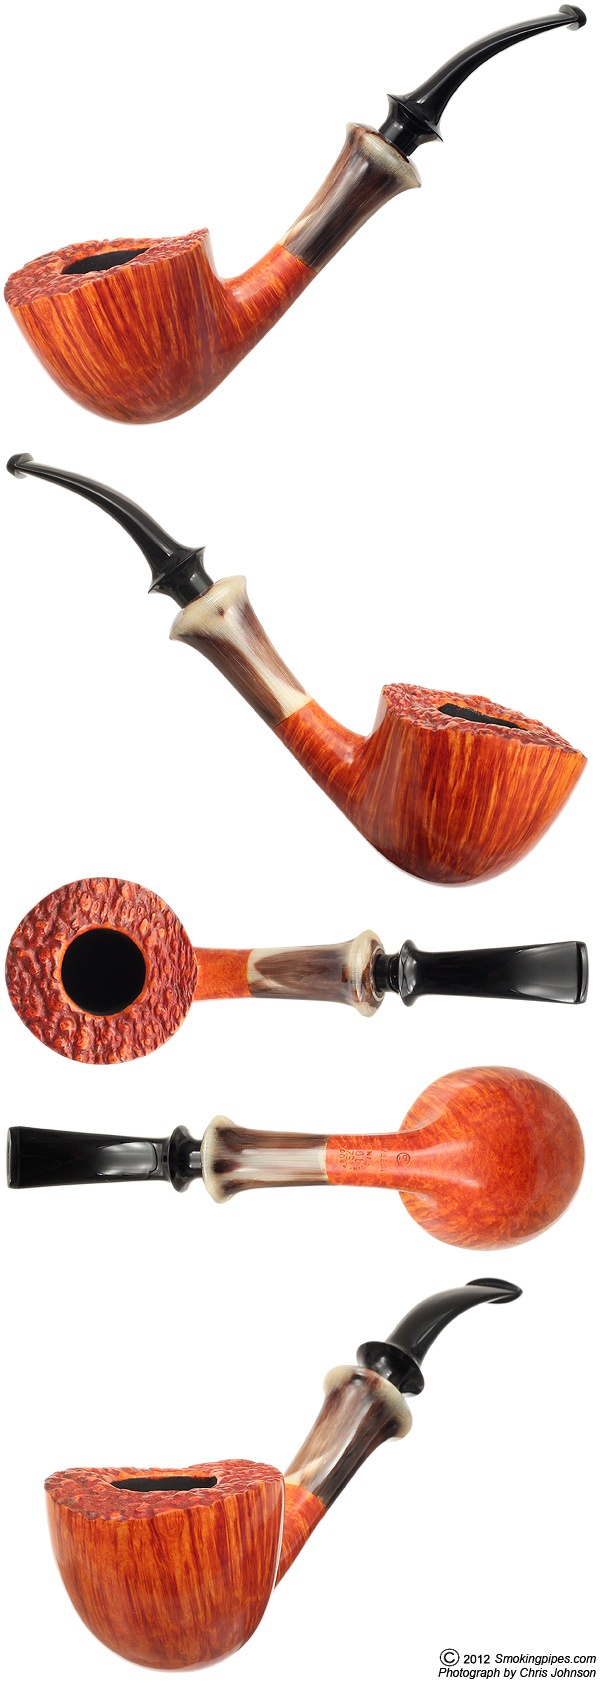 Ikebana Smooth Bent Dublin with Horn (F)    http://www.smokingpipes.com/pipes/new/tsuge/moreinfo.cfm?product_id=97691